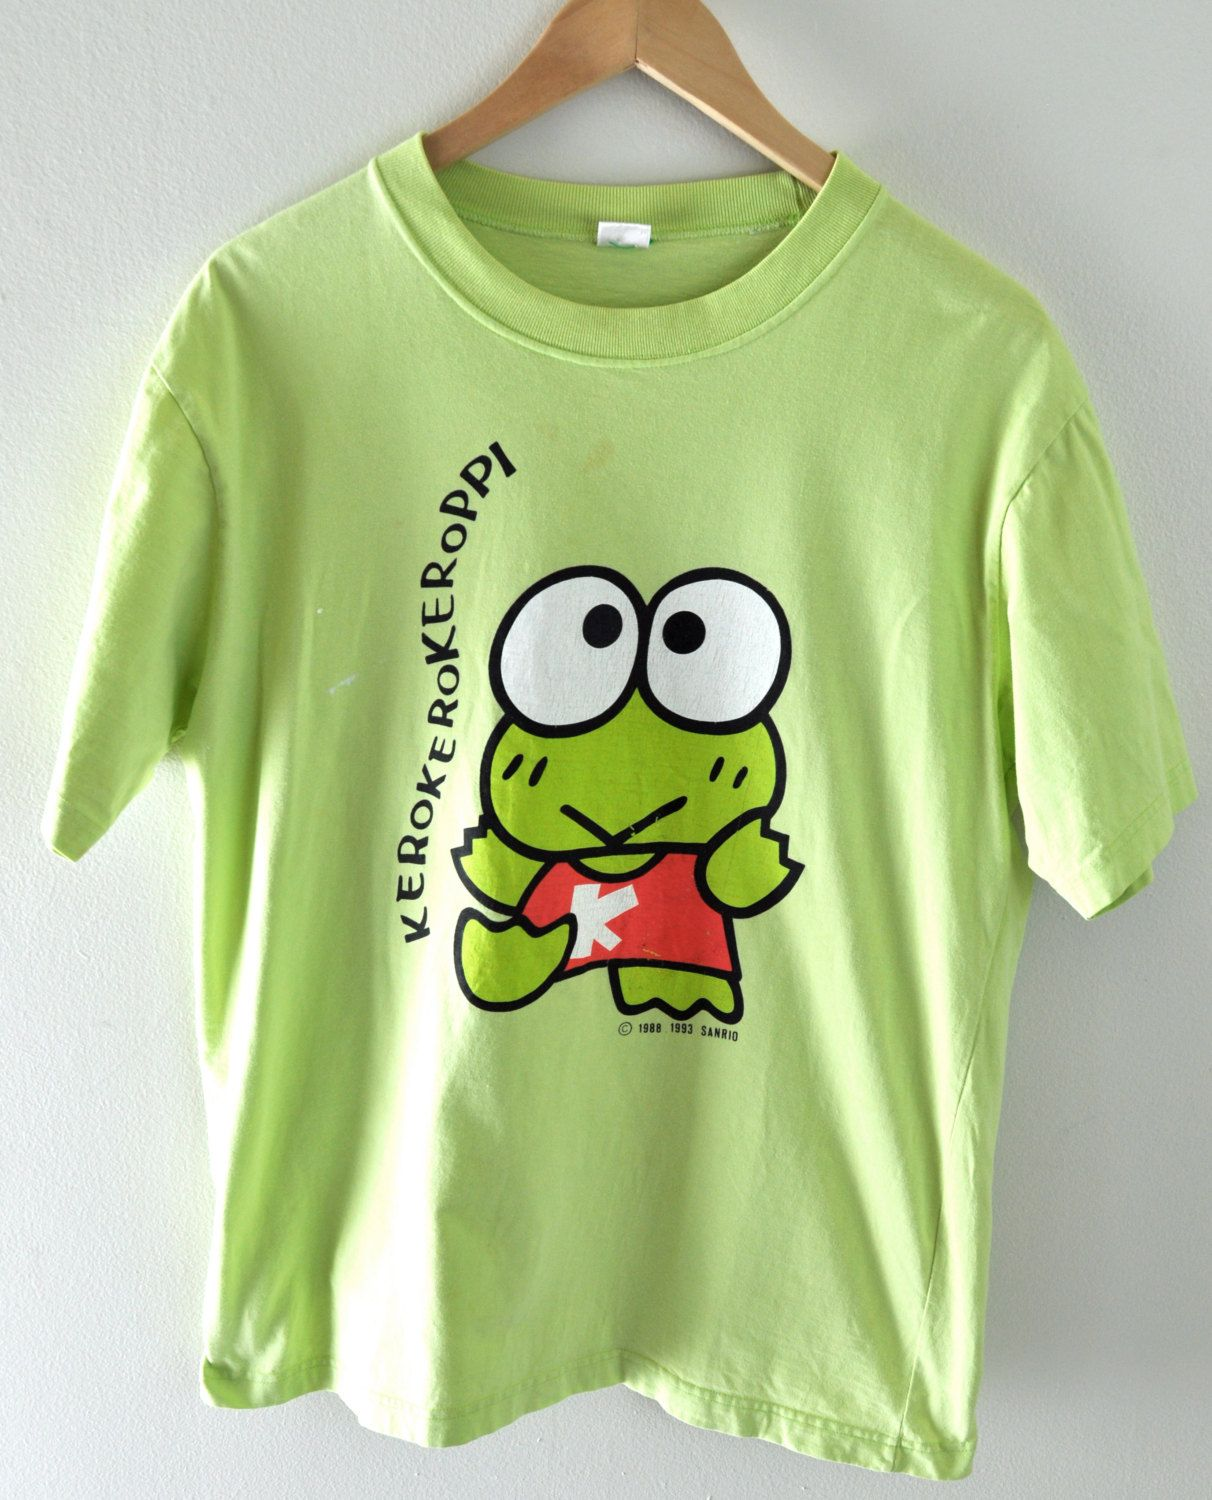 86336776 Authentic Vintage Sanrio T-Shirt. Keroppi in 2019 | fashion never ...